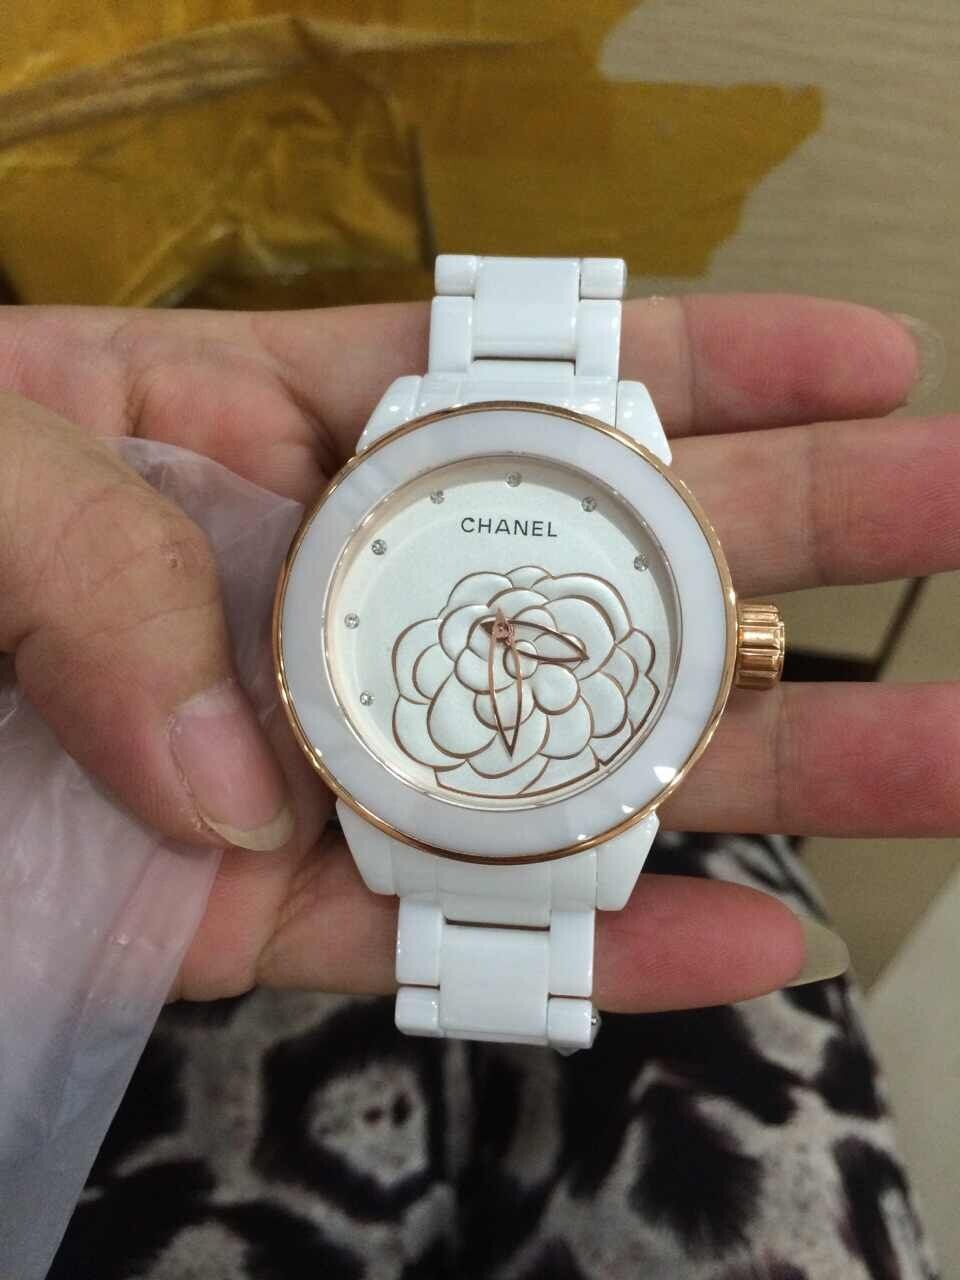 of large c mother grey version watch en crop premiere re ca dial steel default and chanel jewelry white watches cha pearl premi diamonds ne